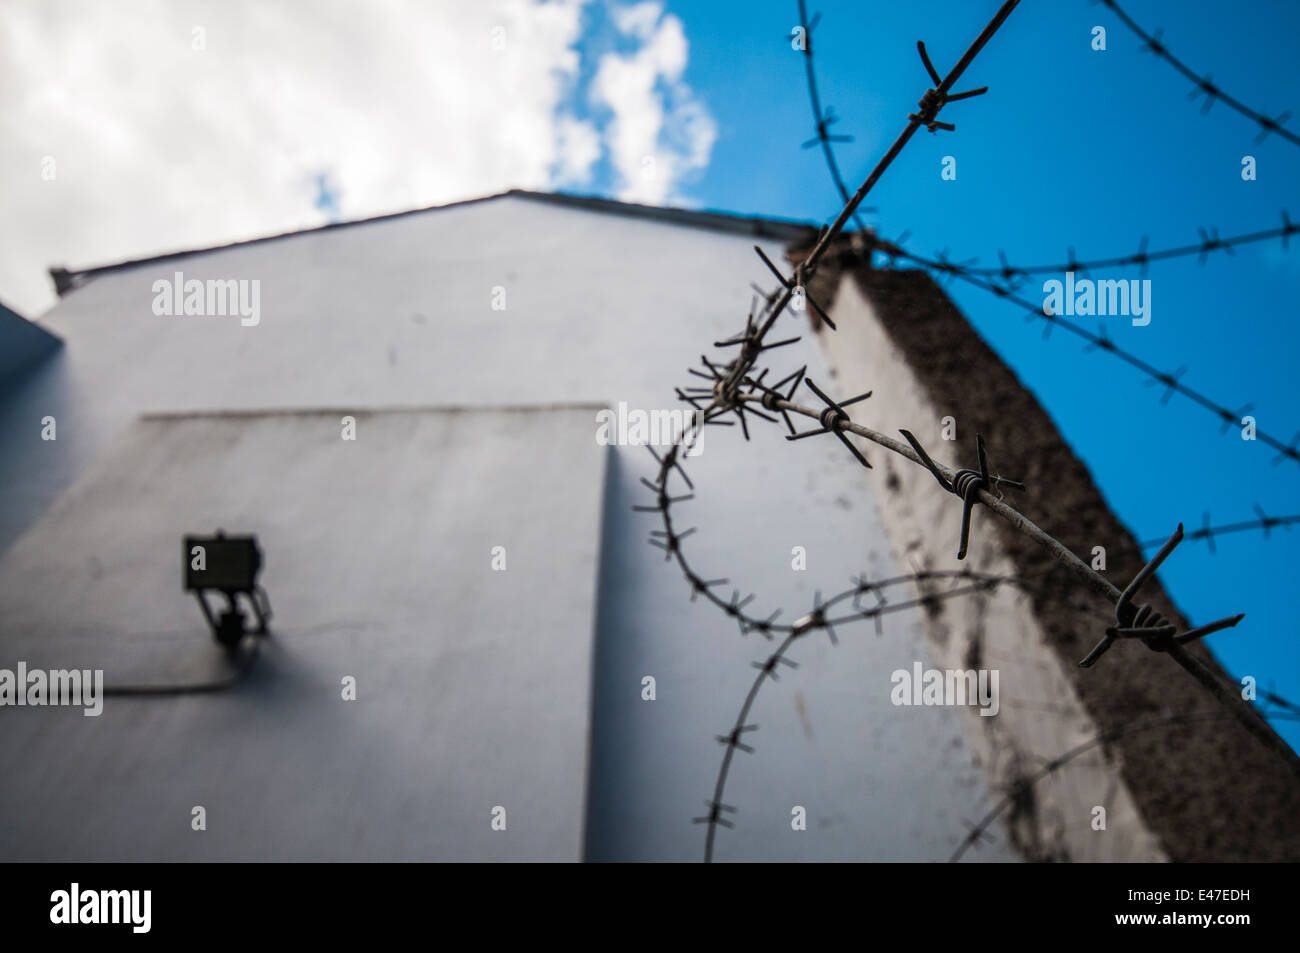 Barbed wire on the side of a building - Stock Image